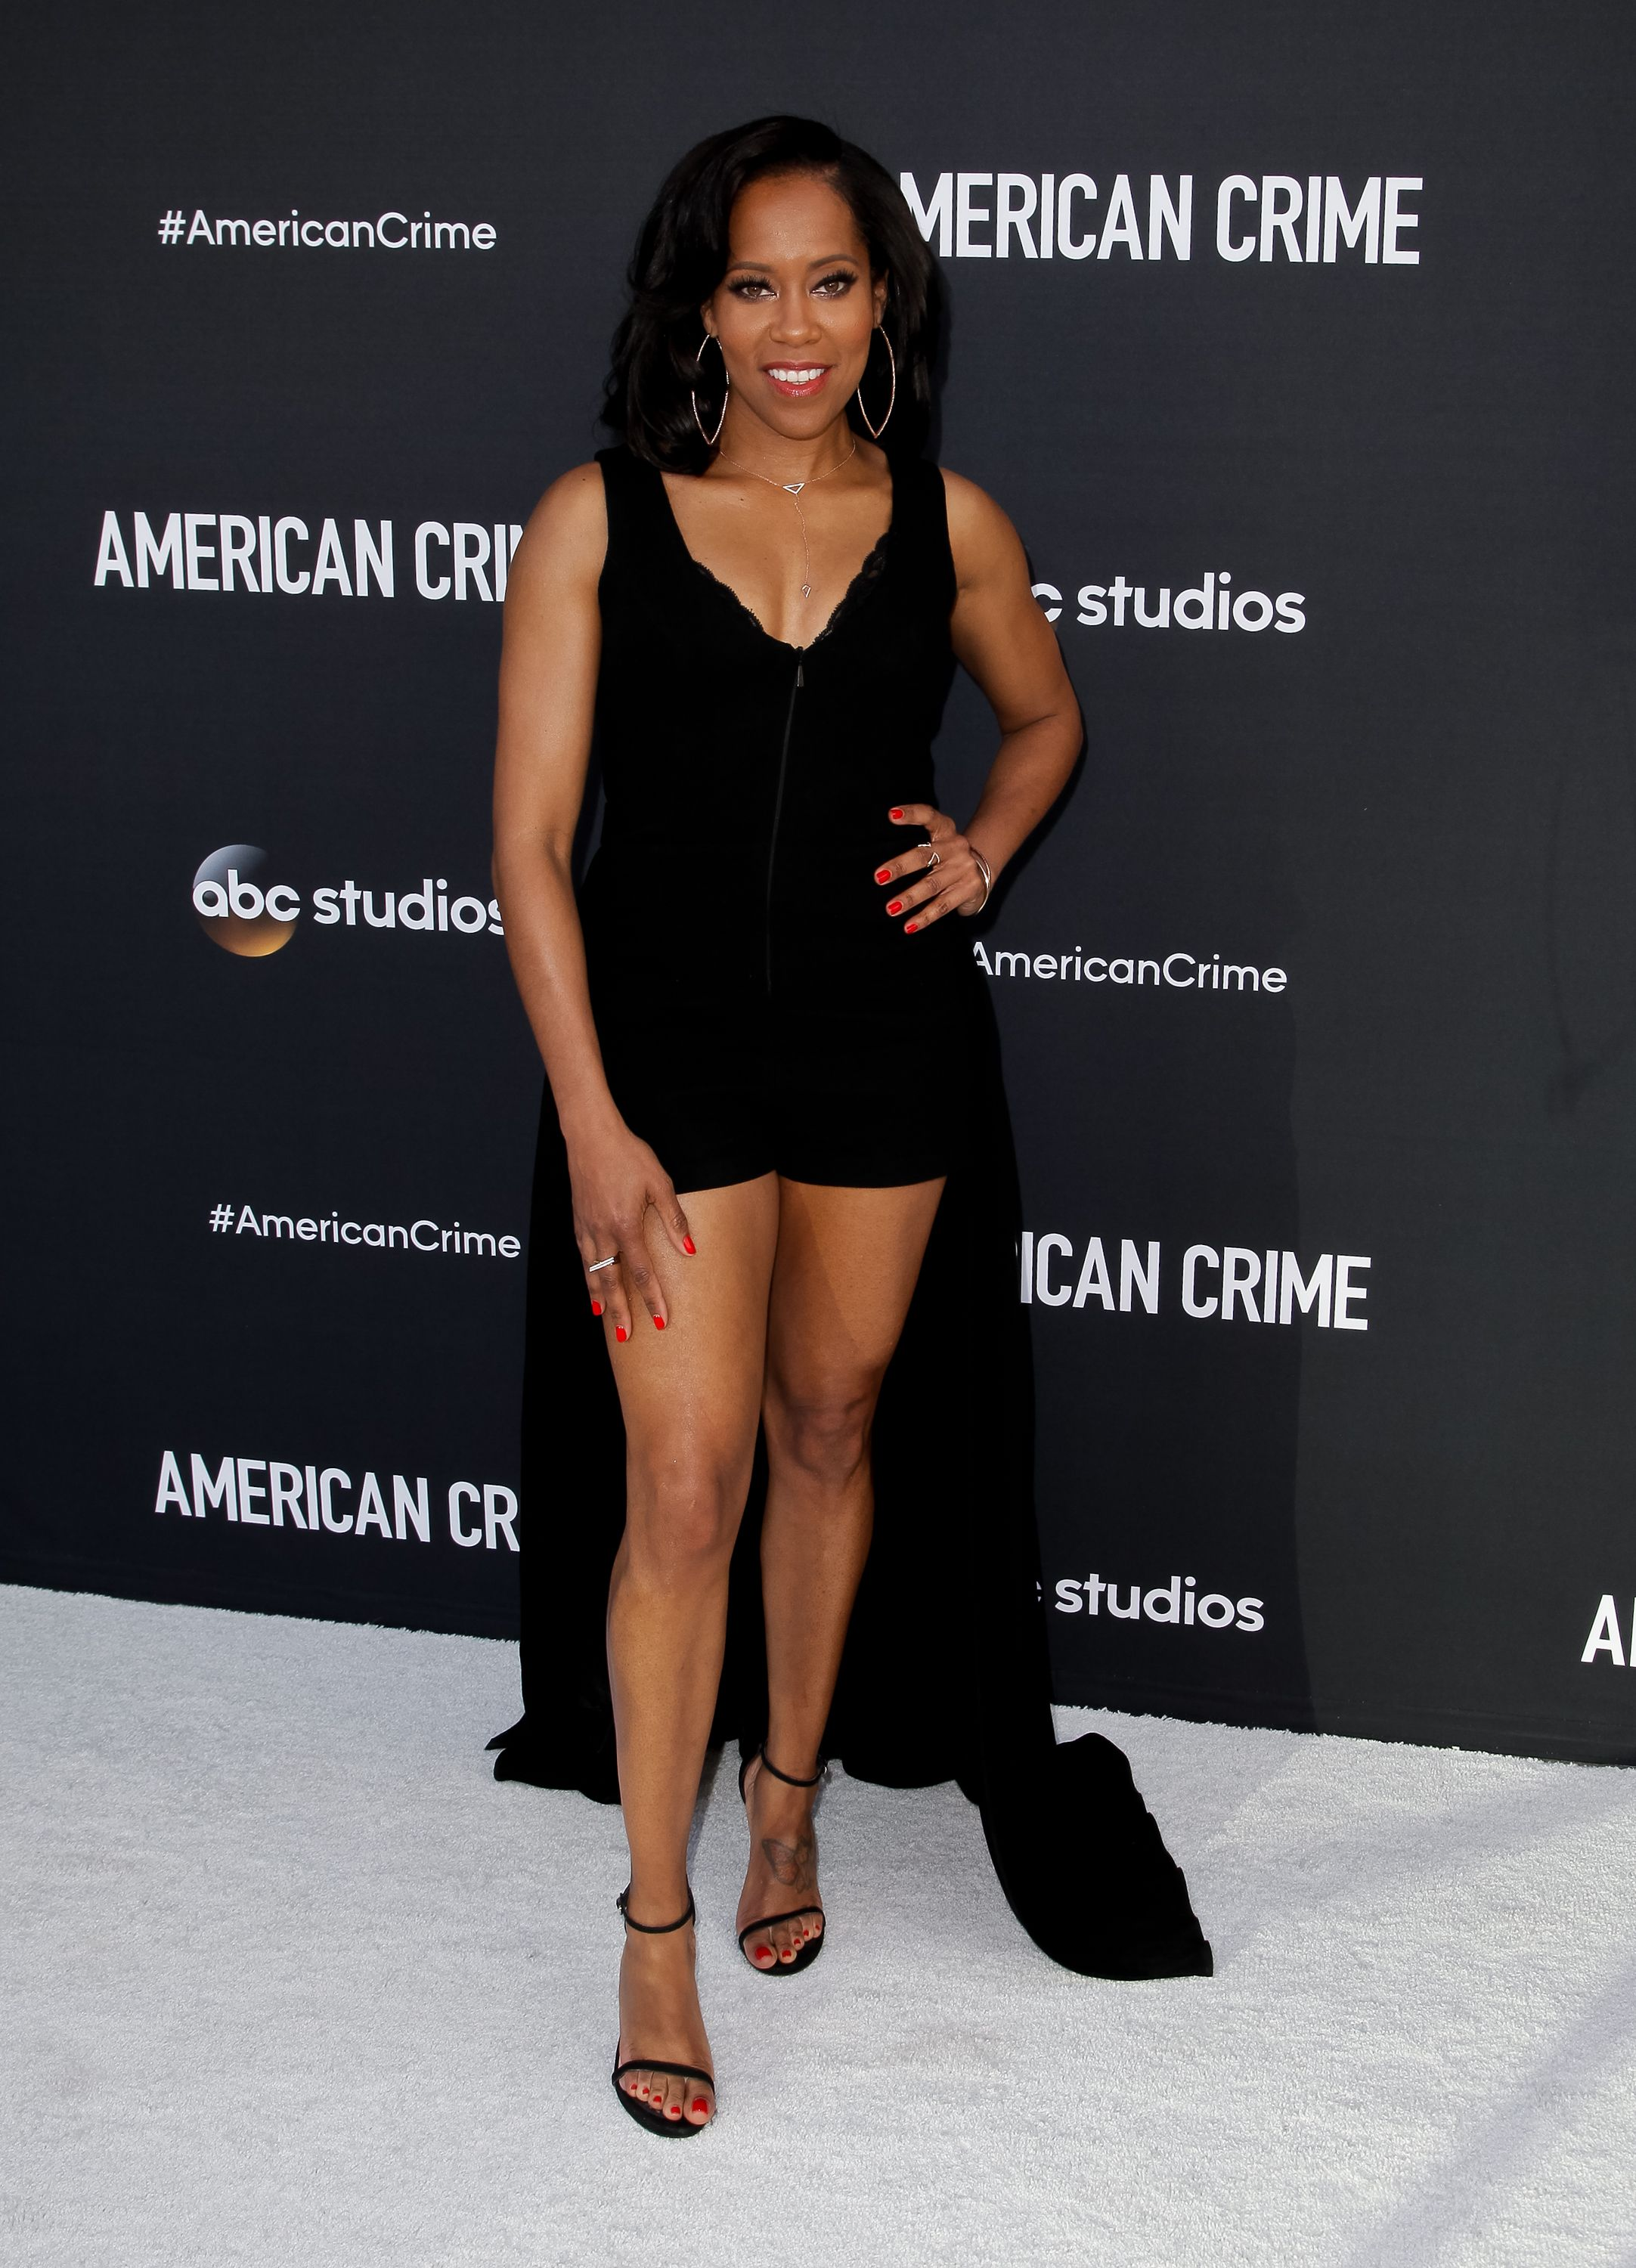 Regina King during the FYC event for ABC's 'American Crime' at Saban Media Center on April 29, 2017 in North Hollywood, California. | Source: Getty Images